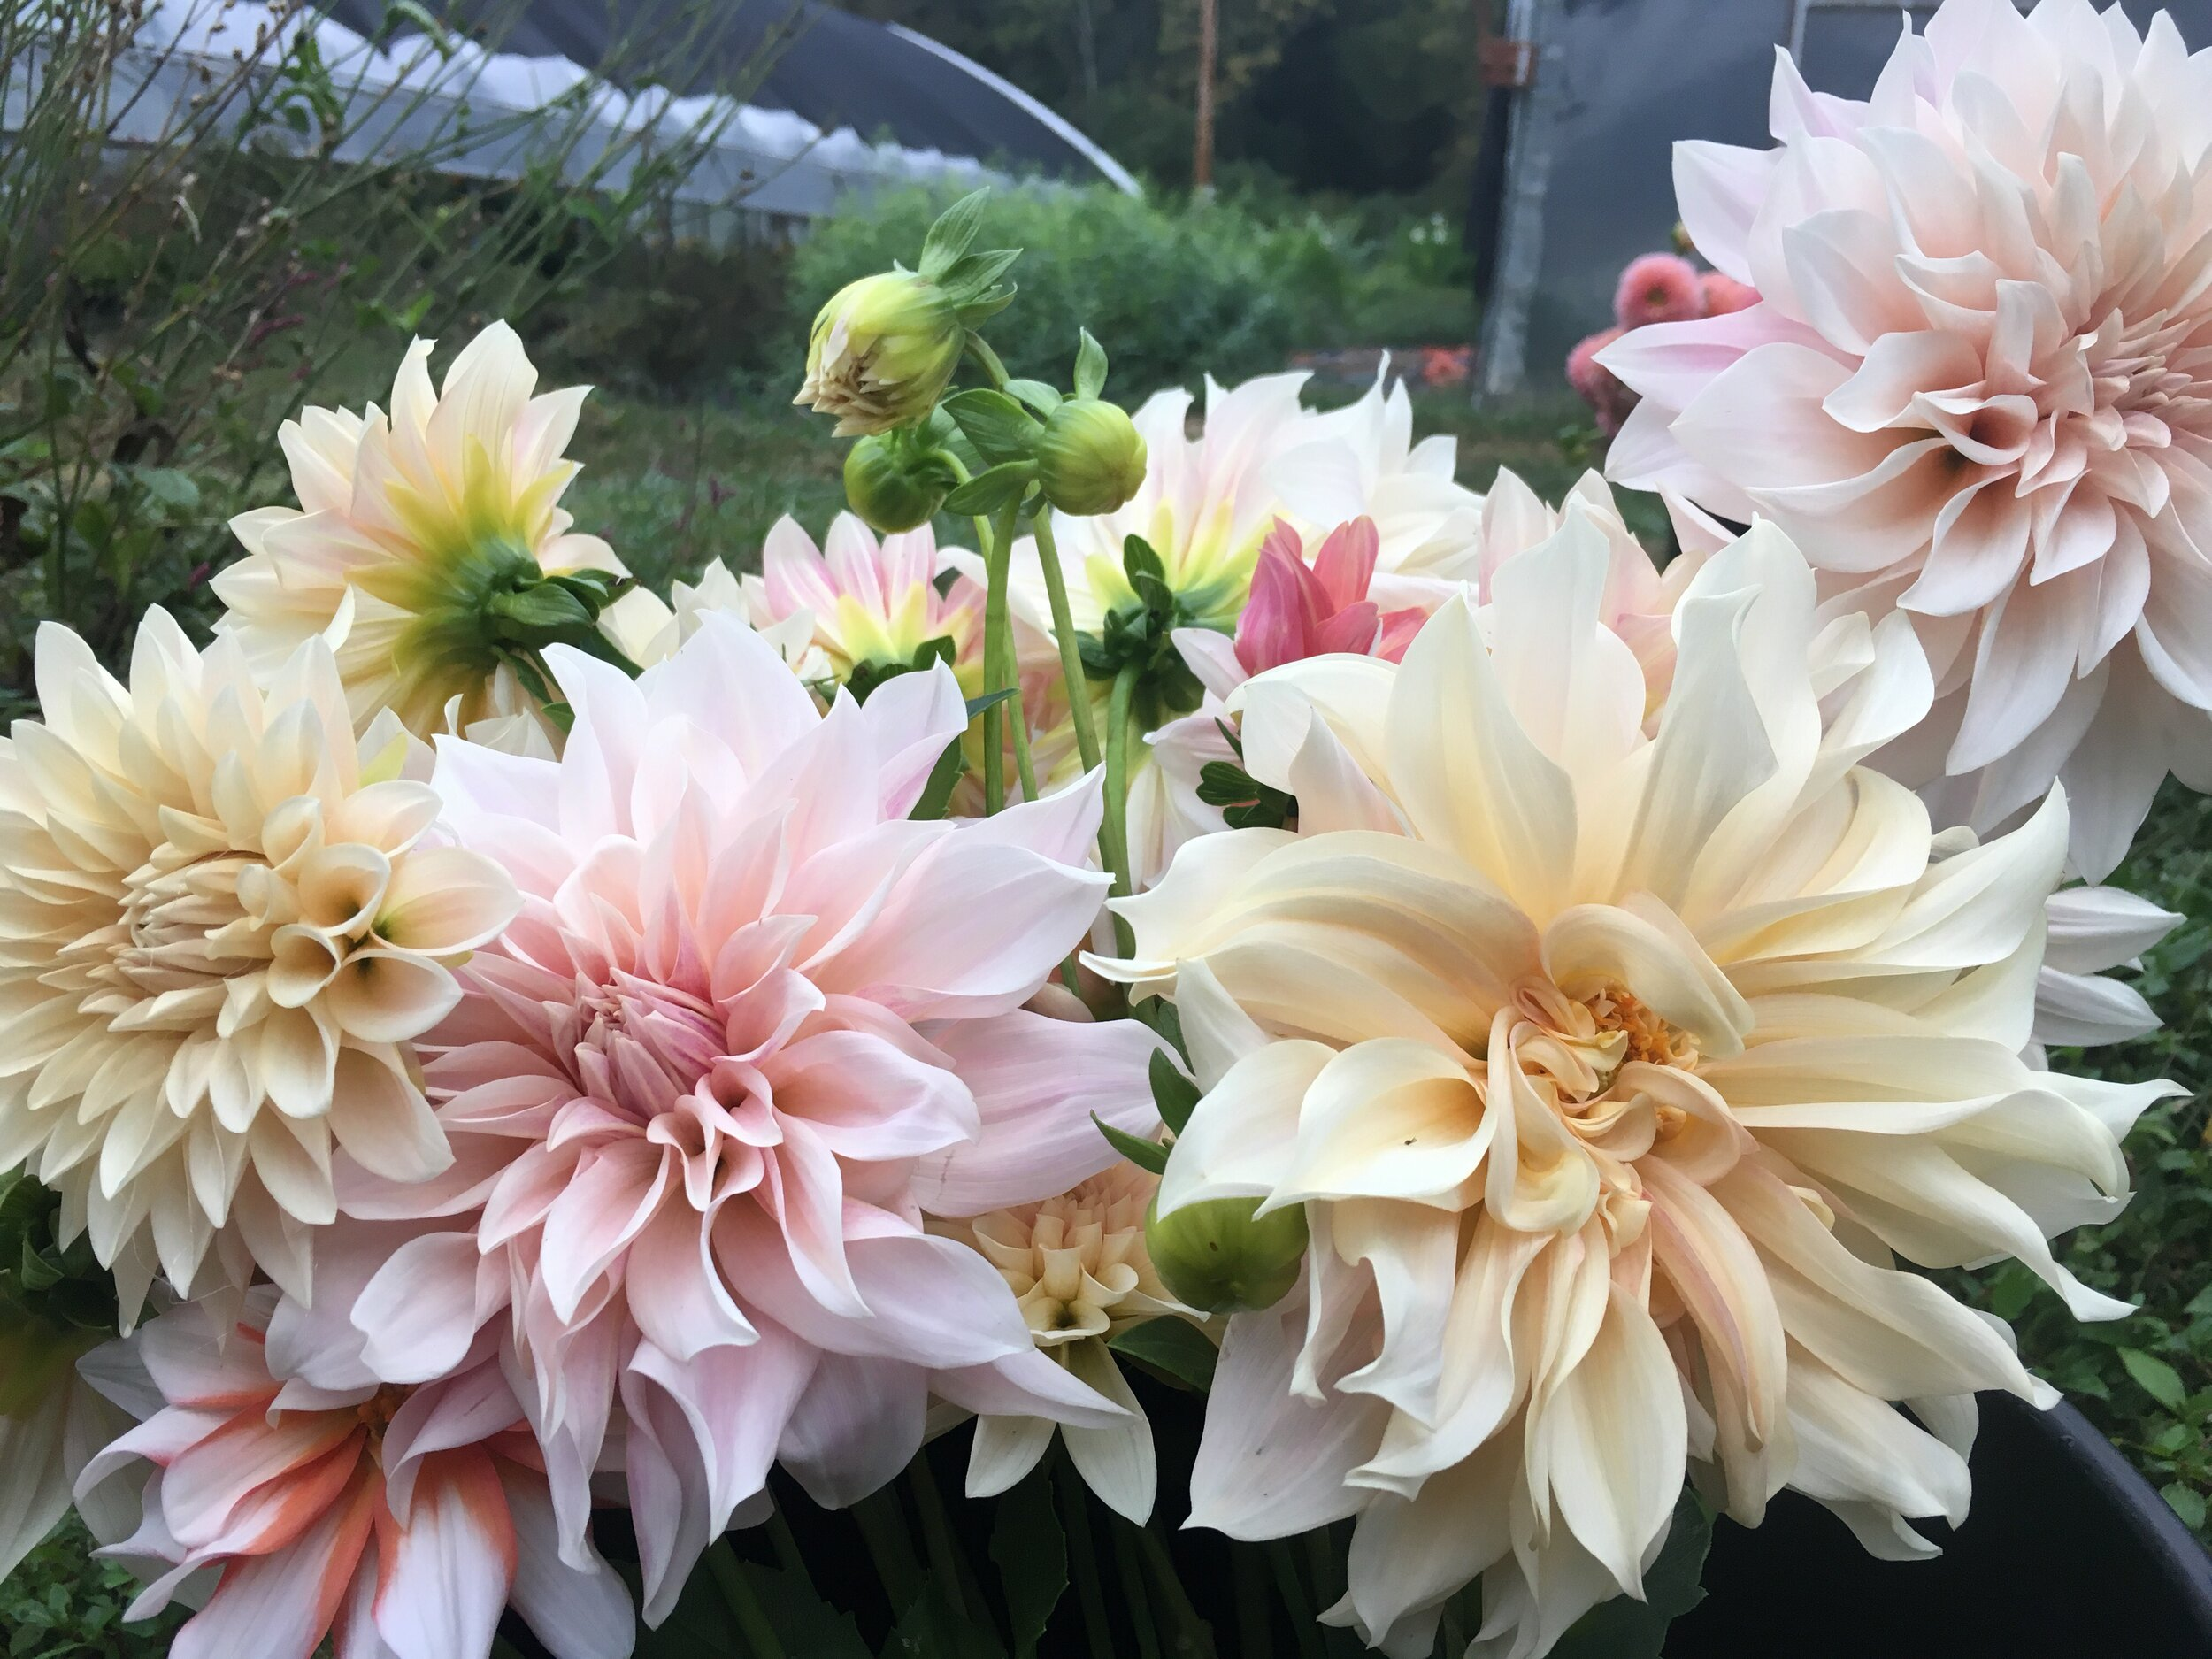 October has arrived and our dahlias will be gone soon. We've enjoyed these beauties immensely over the last several months. In no time at all, frost will come and we'll dig up the dahlia tubers and store them for next year. Growing dahlias for cut flower production takes a whole lot of time and effort, but it's certainly worth it to see such stunning blooms.